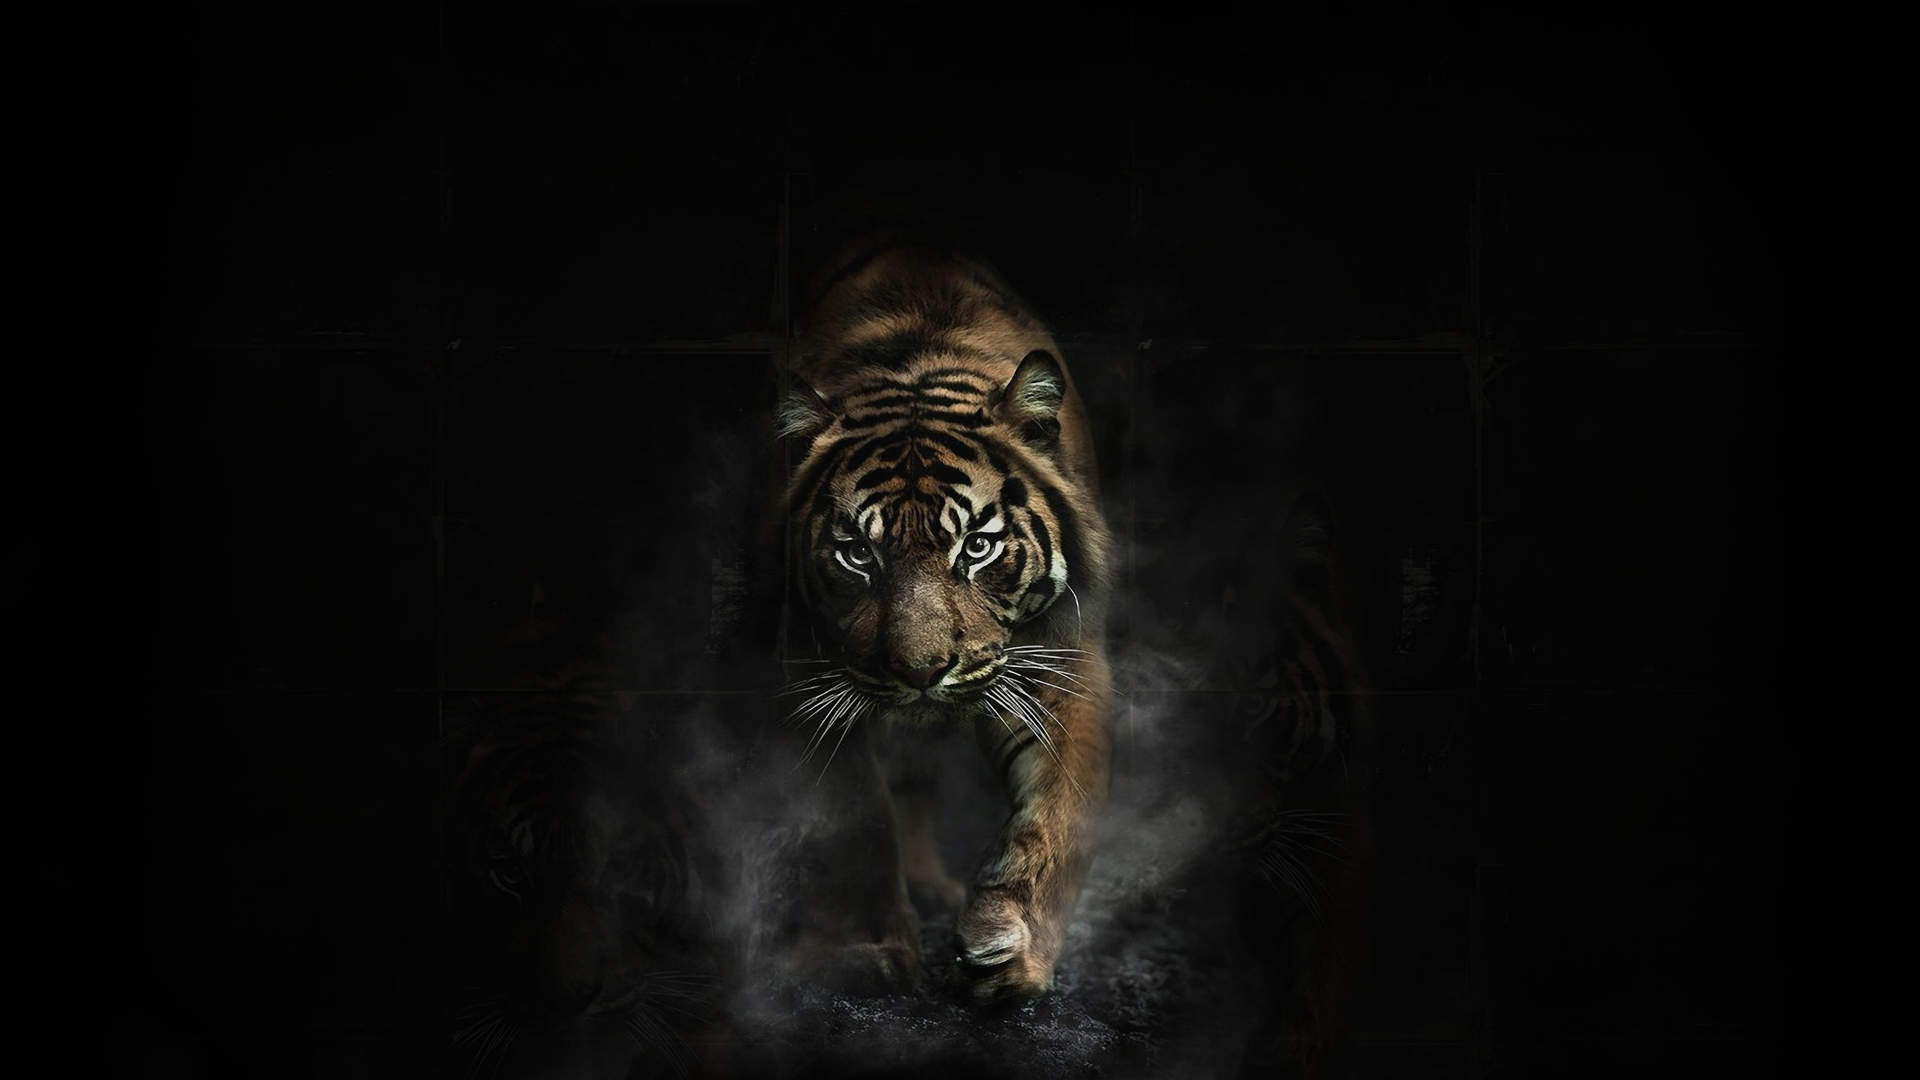 Tiger tigers wallpaper | 1920x1080 | 83195 | WallpaperUP